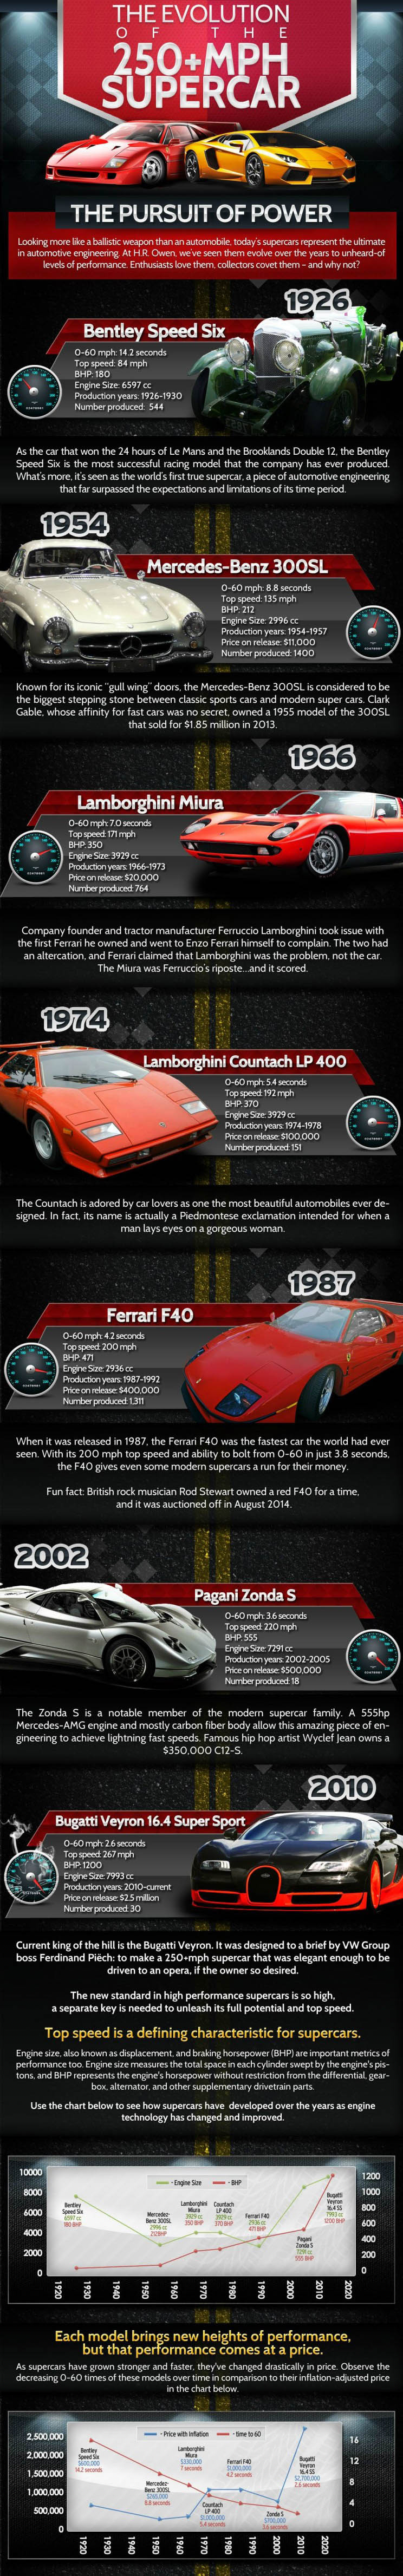 evolution of the supercar